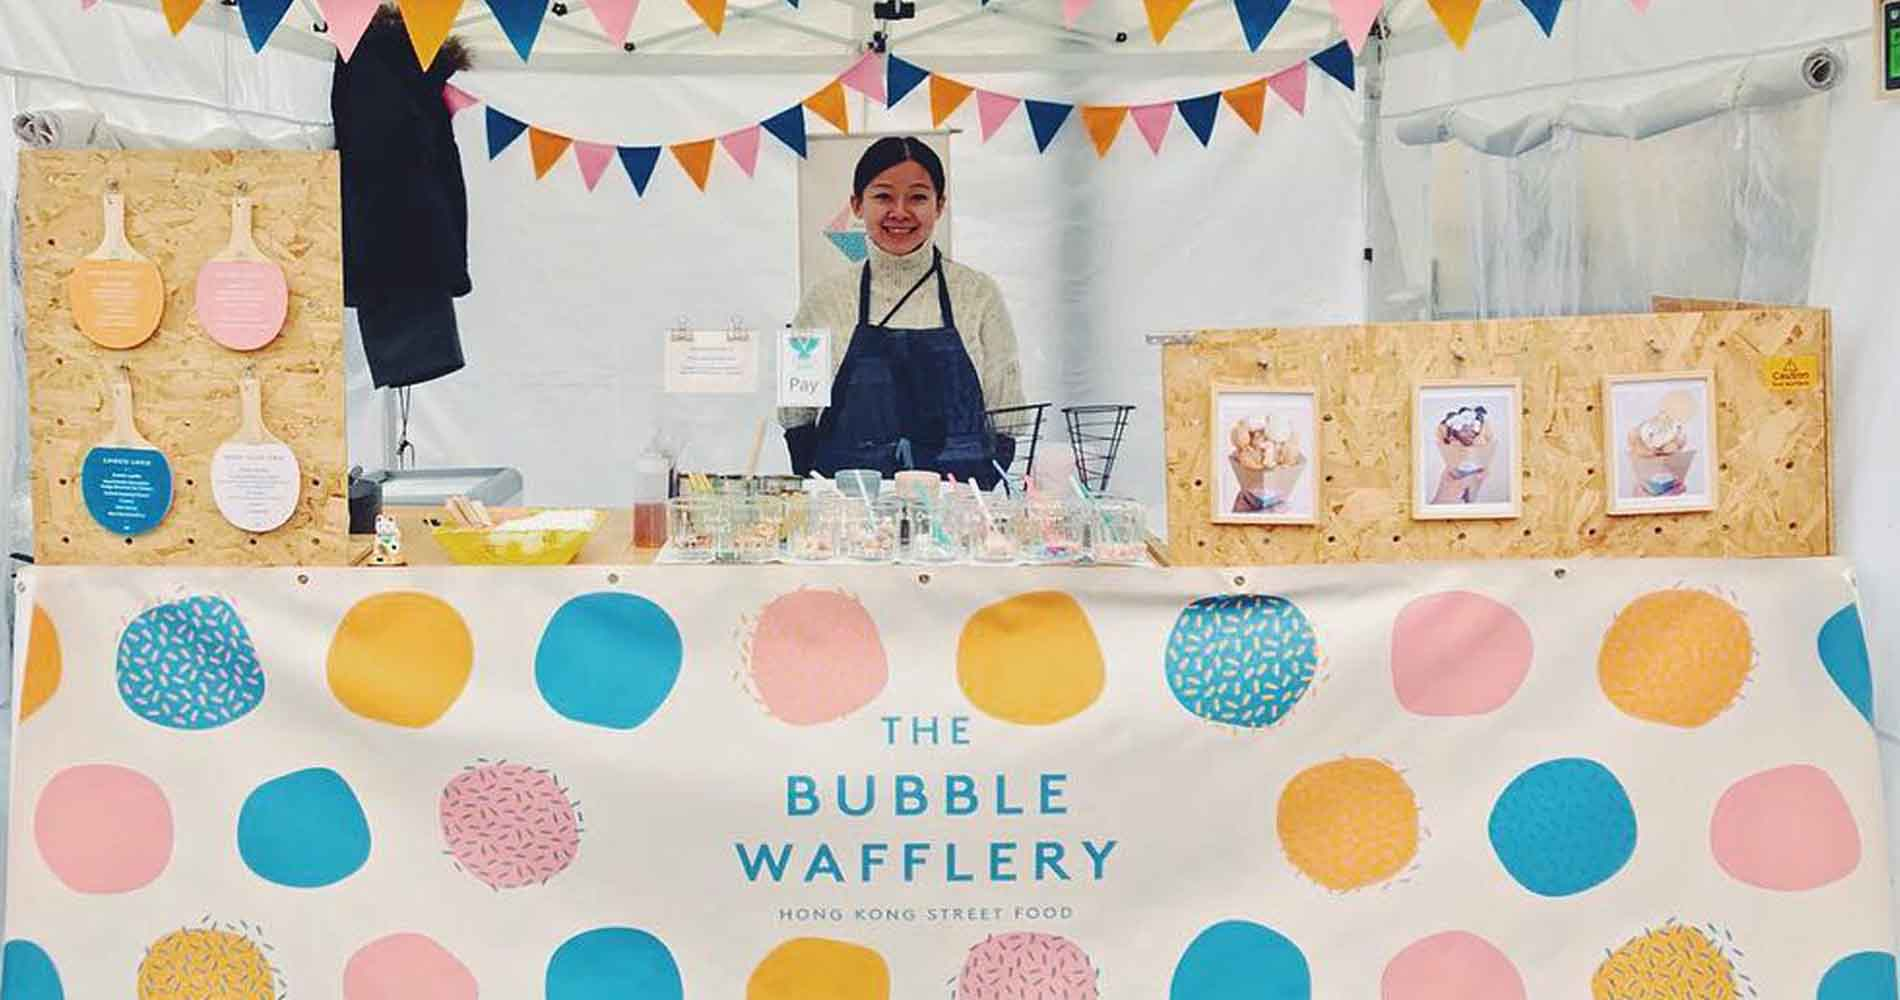 The Bubble Wafflery Stall